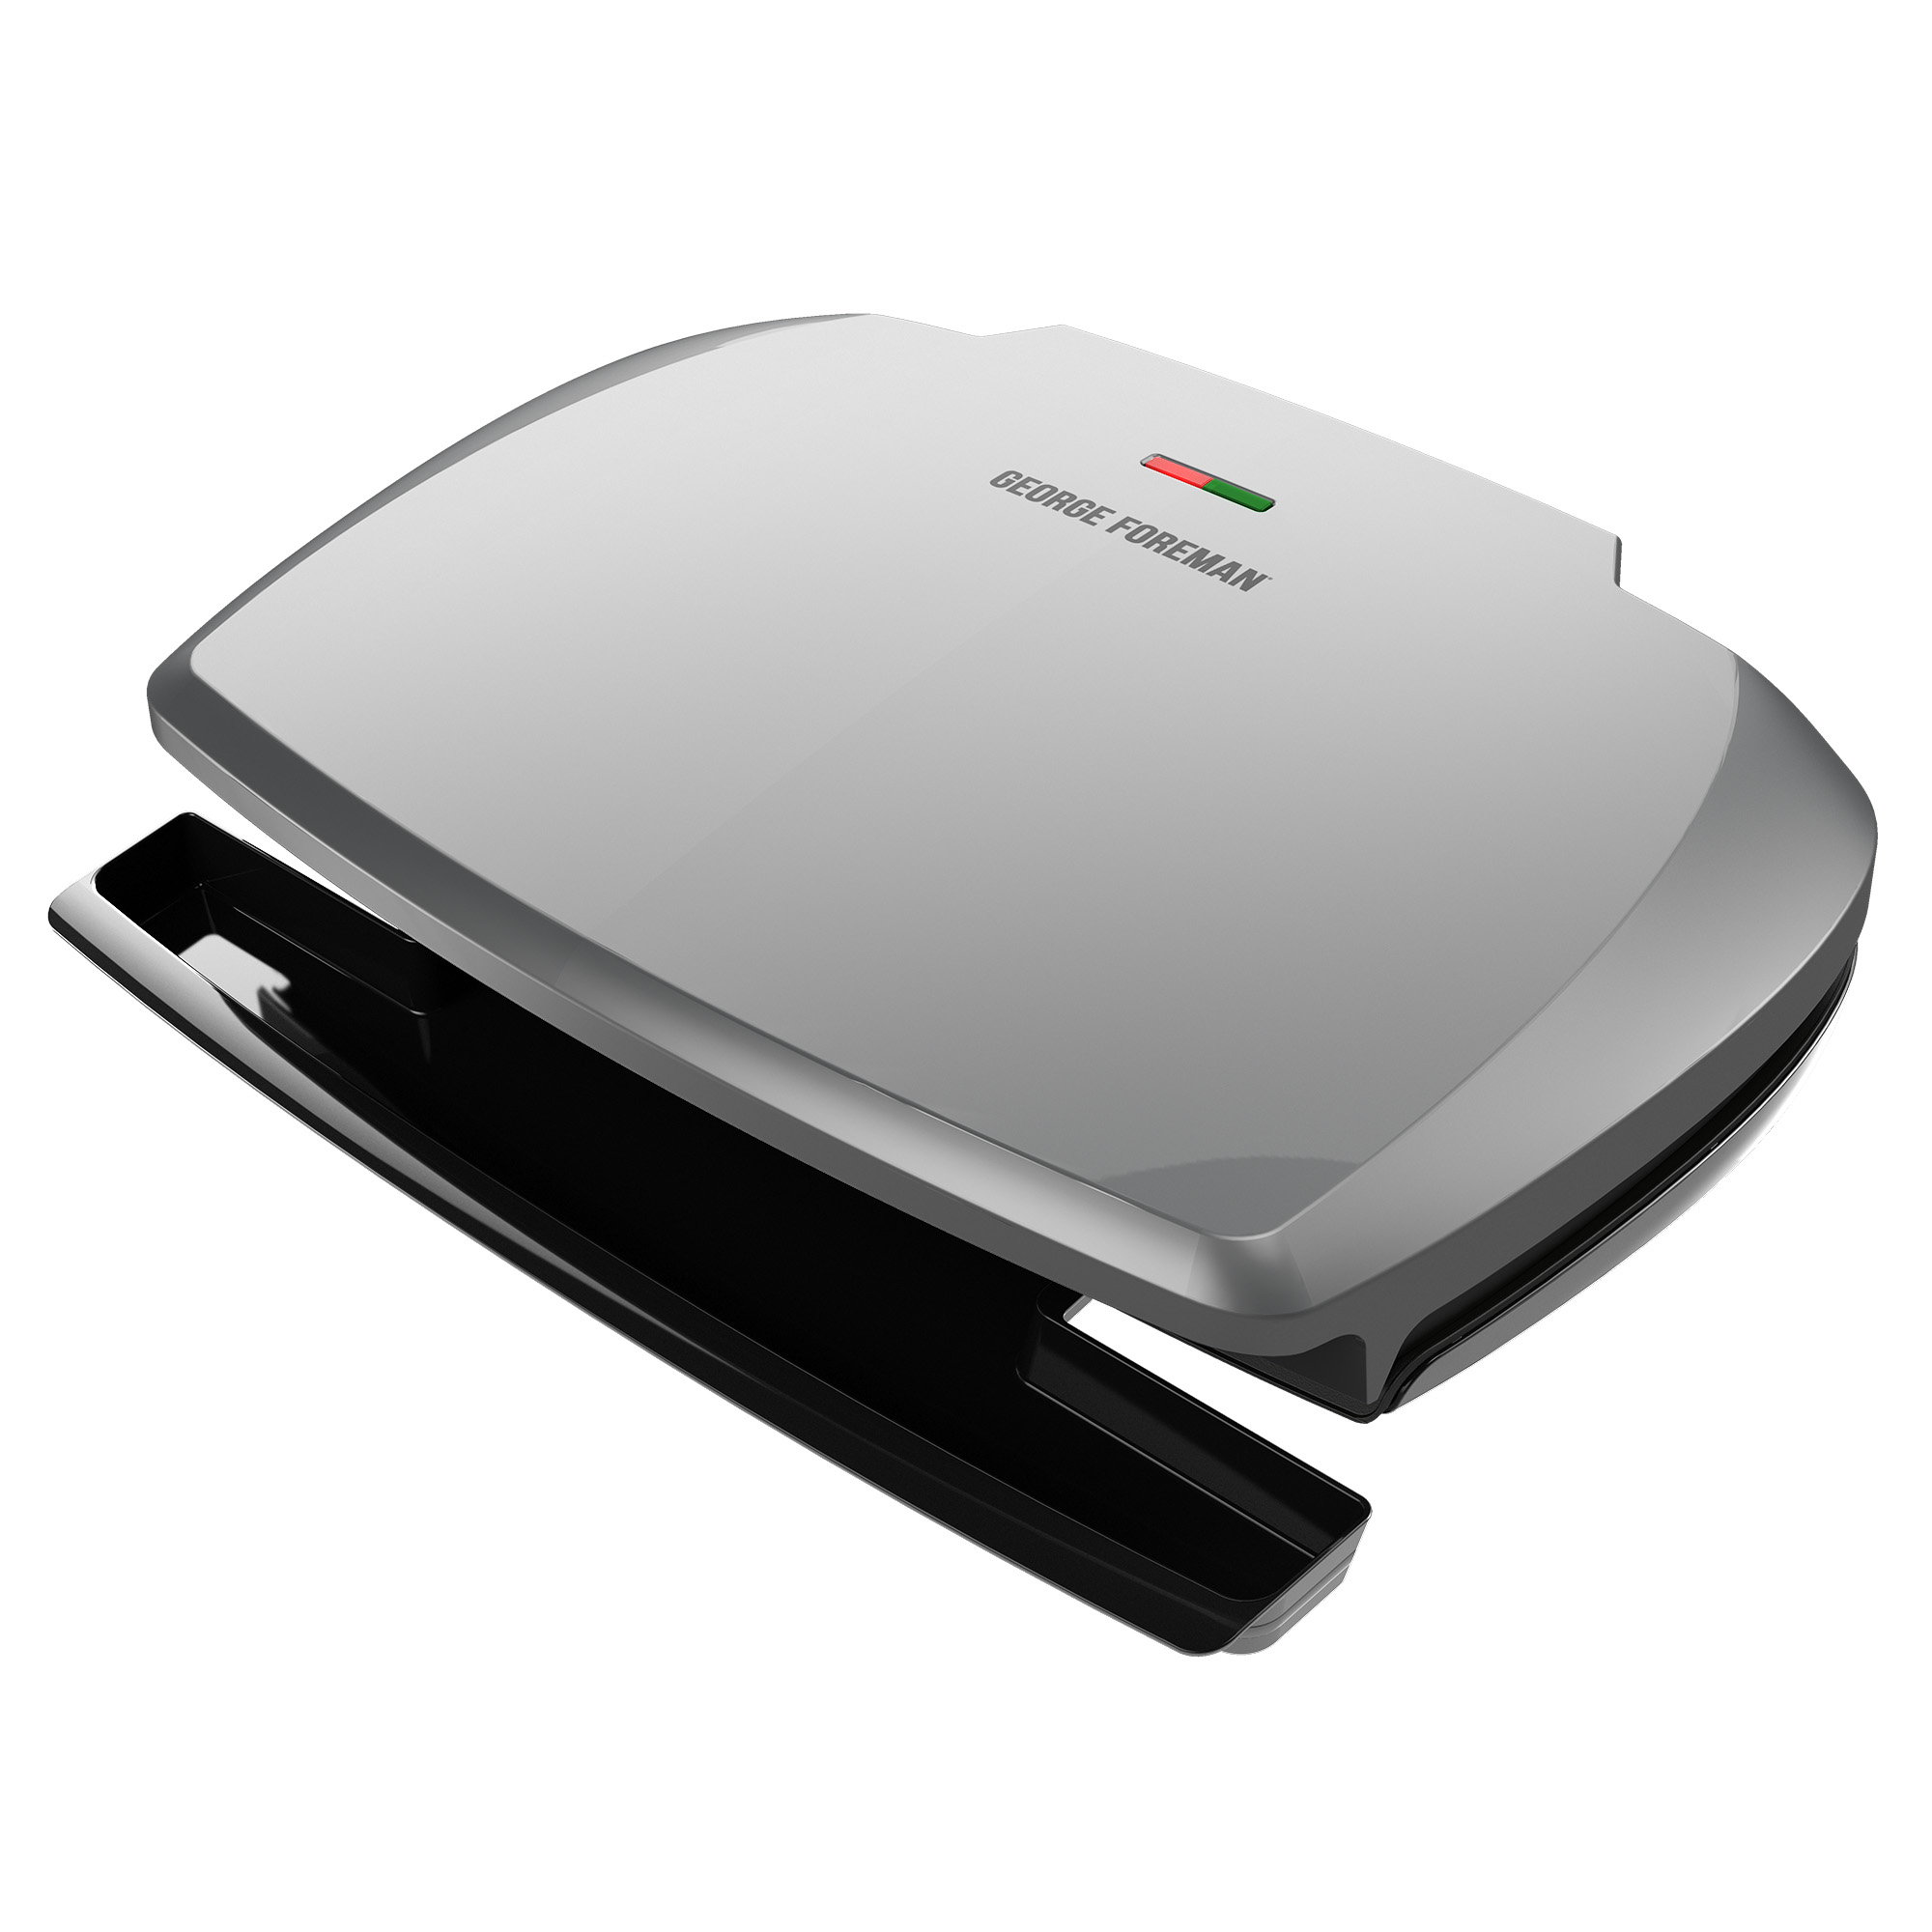 George Foreman 9-Serving Classic Plate Grill and Panini Press, Silver, GR390FP